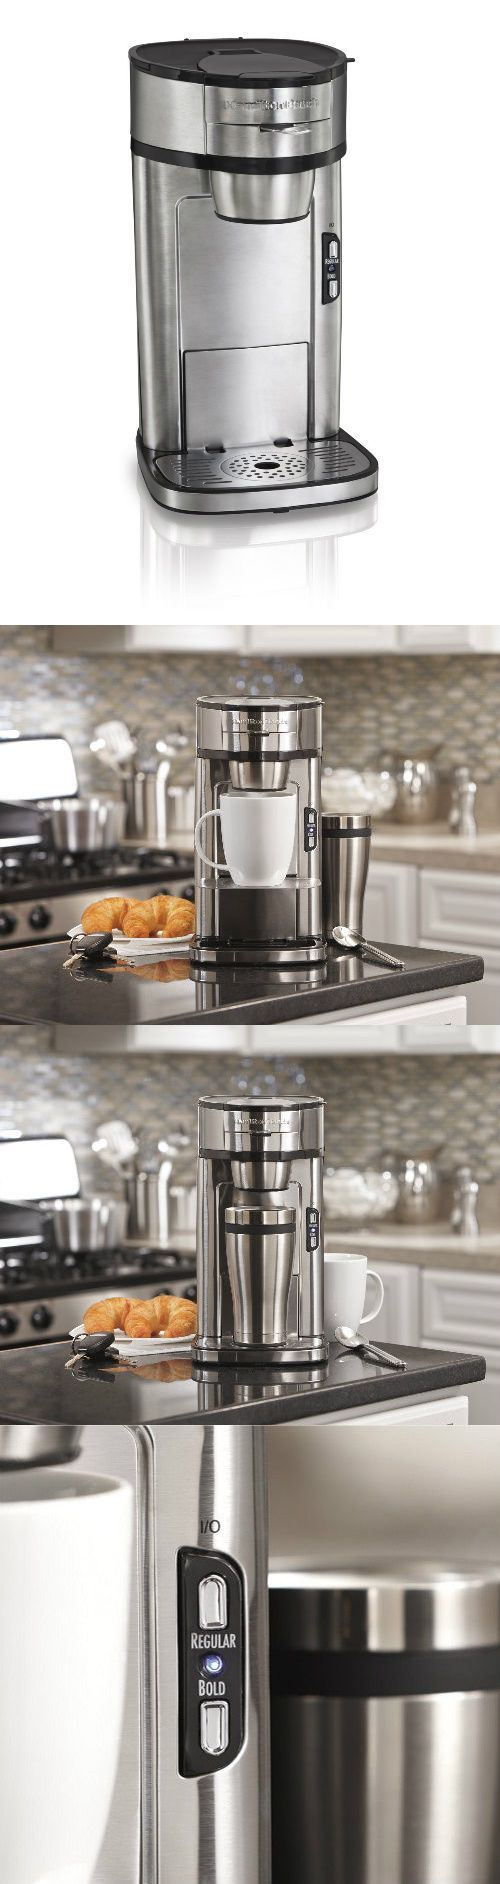 Single Serve Brewers 156775: Personal Single Cup Coffee Maker Machine Brewer Stainless Hamilton Beach 14 Ounc -> BUY IT NOW ONLY: $53.6 on eBay!